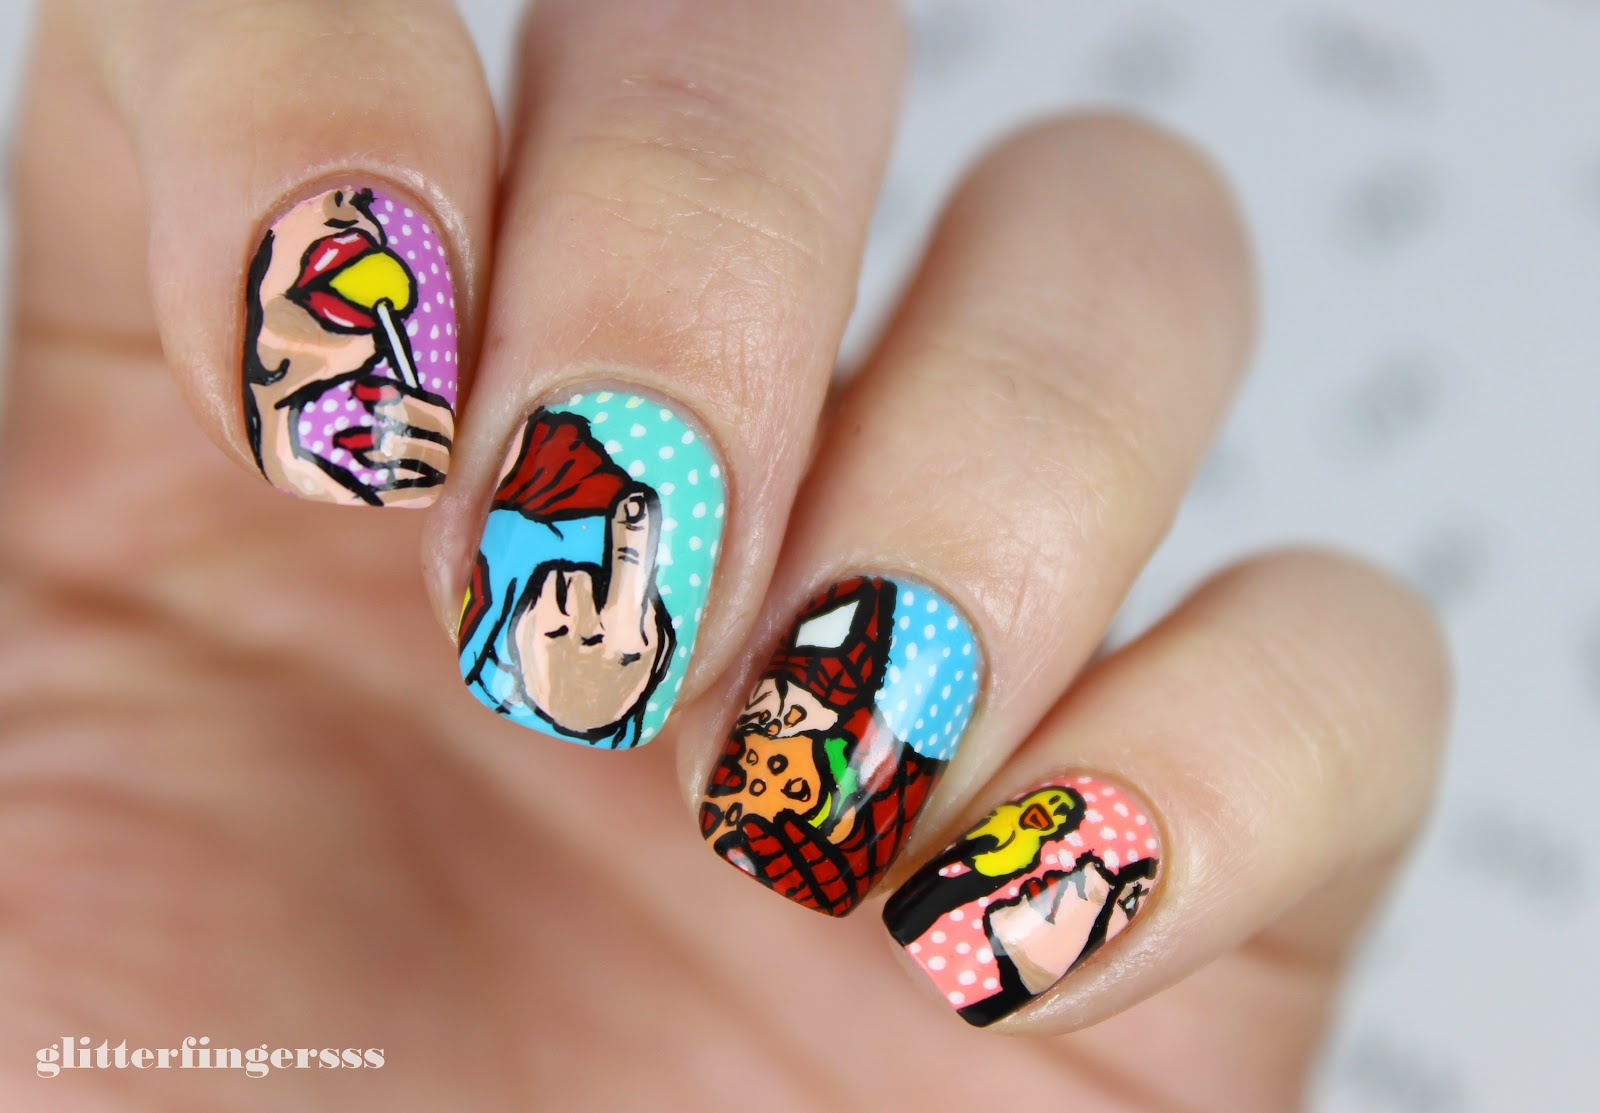 Nail Art Funny Superhero Pop Art Glitterfingersss In English